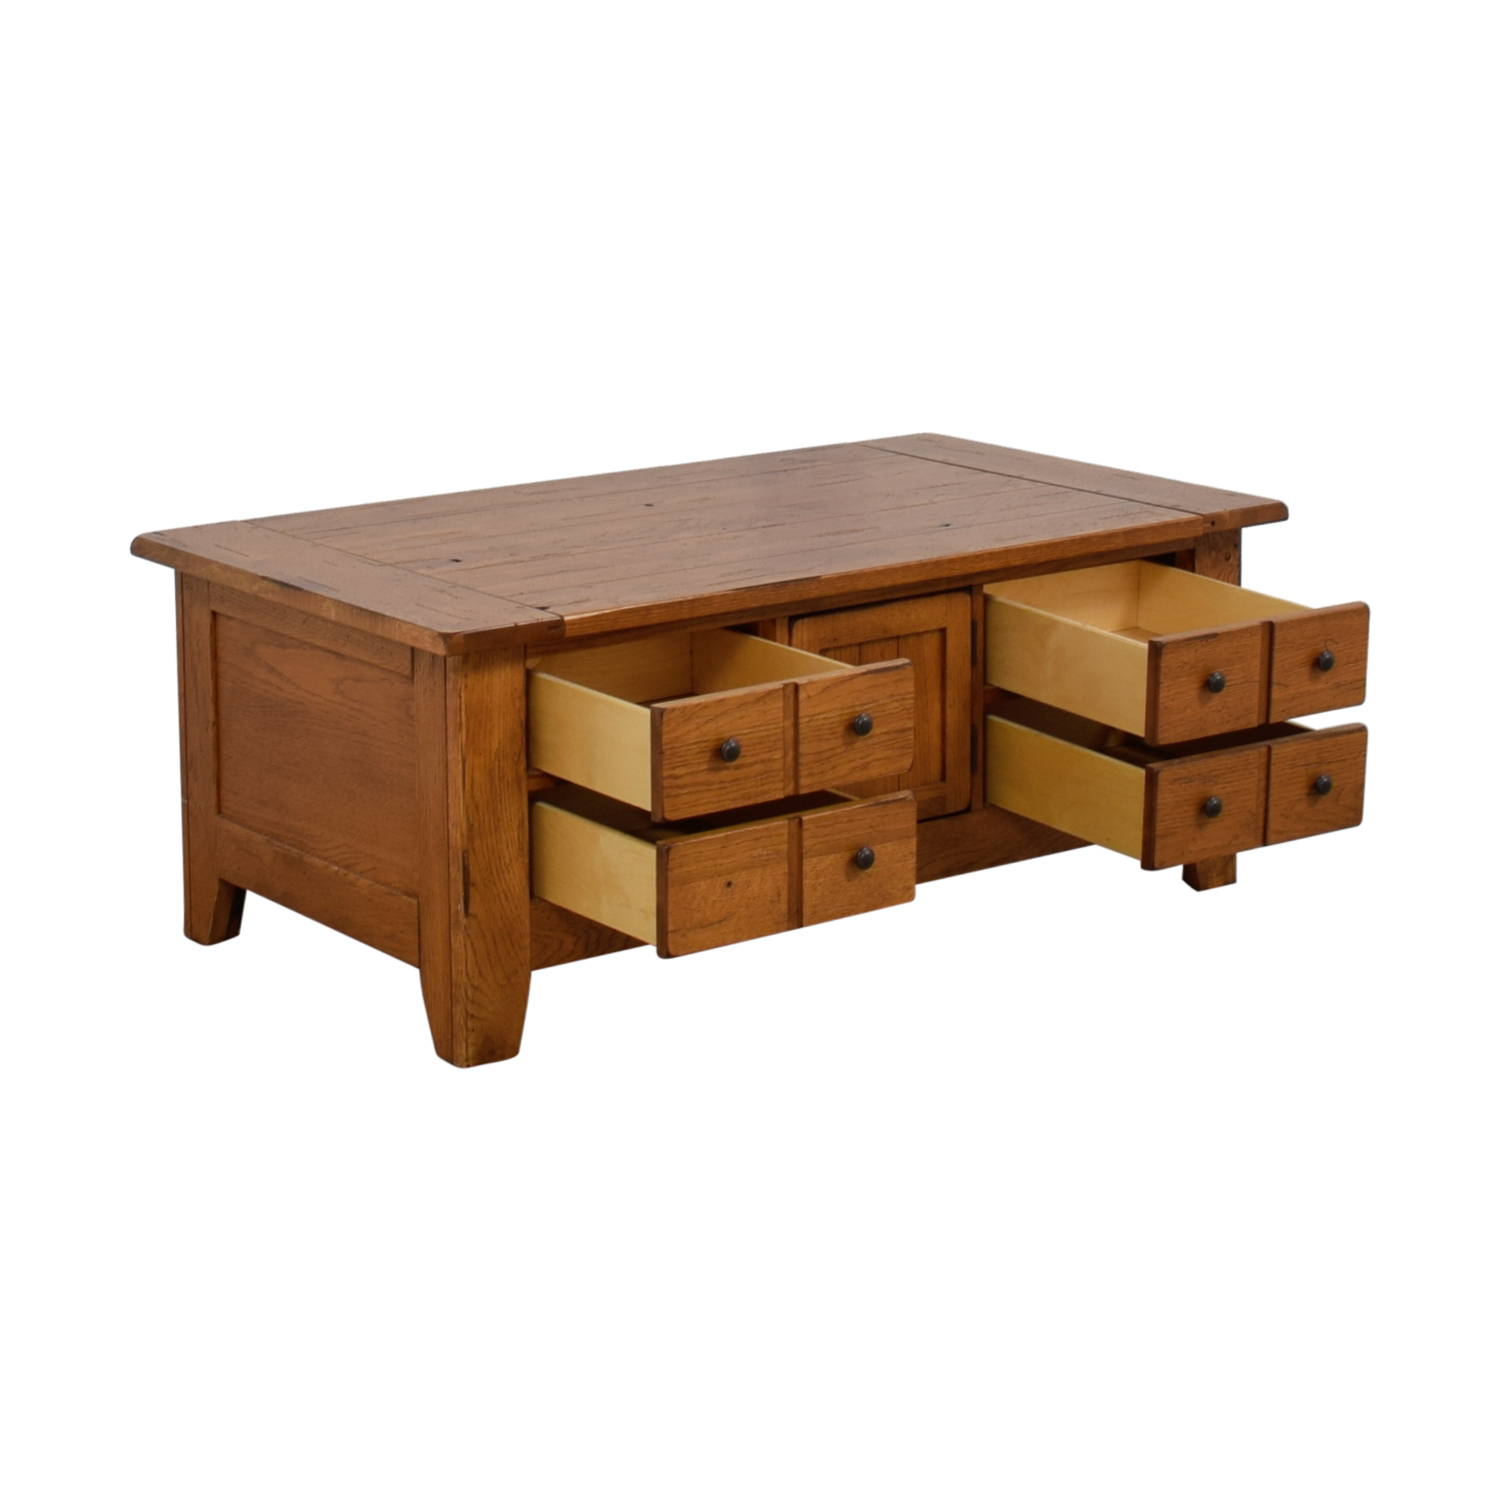 Natural Wood Coffee Table.79 Off Broyhill Furniture Broyhill Natural Wood Coffee Table With Storage Tables